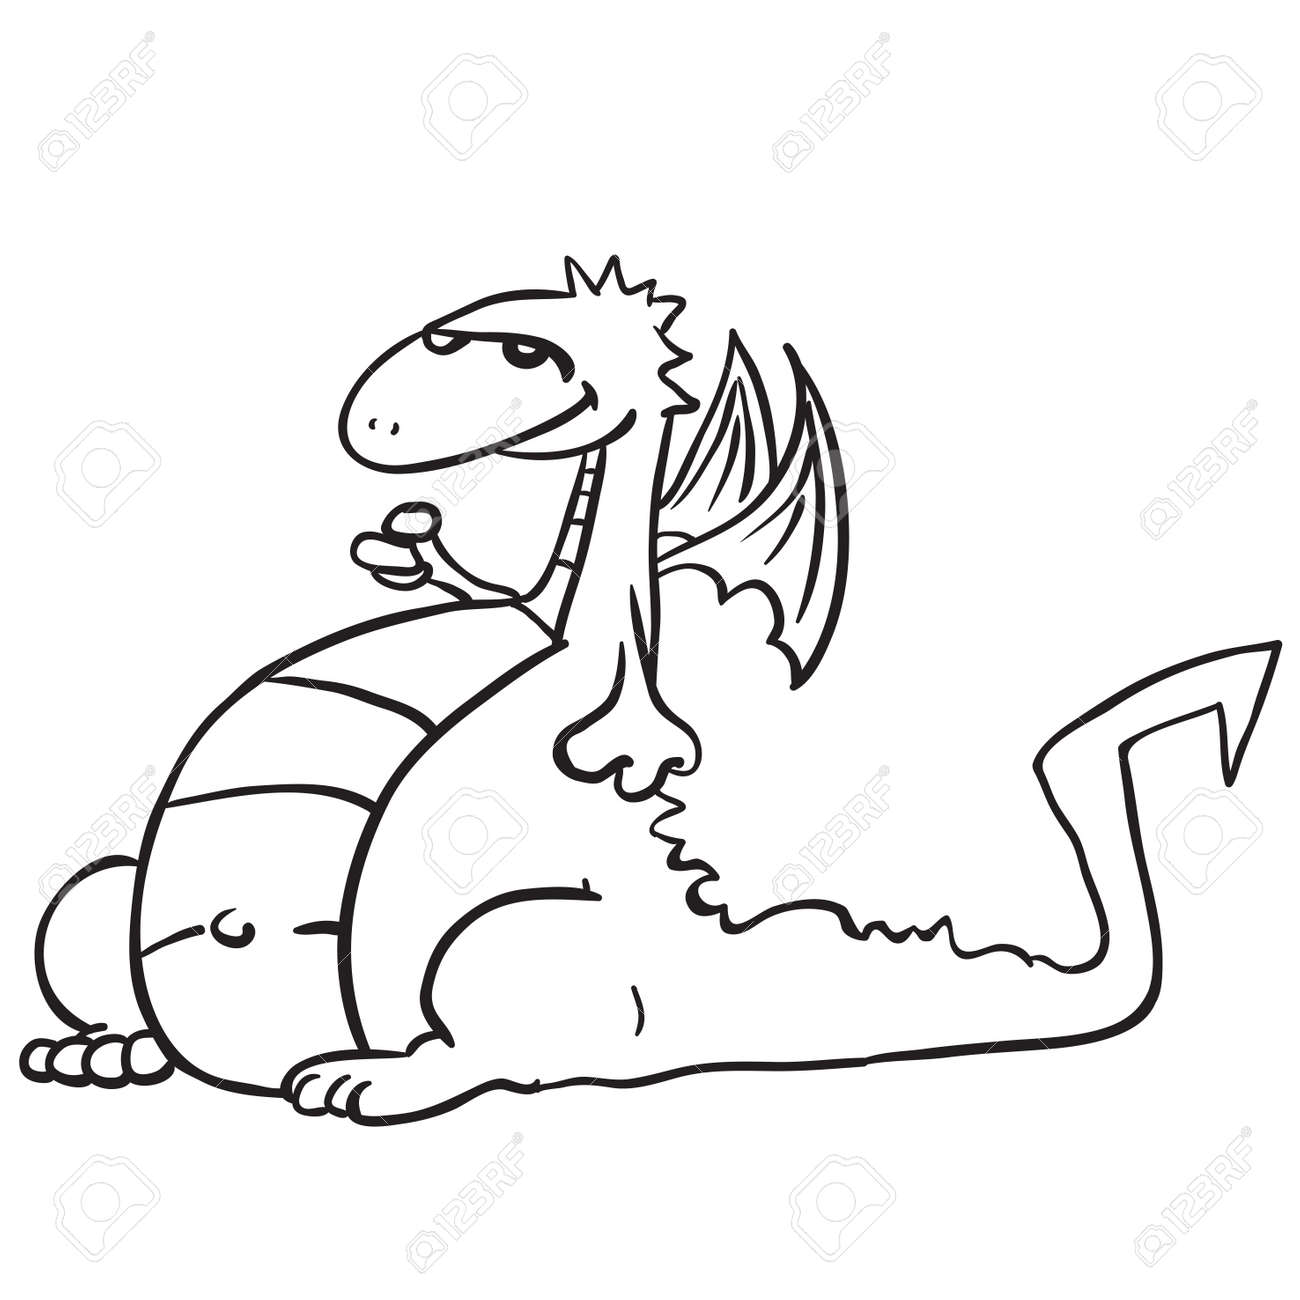 Simple Black And White Dragon Cartoon Royalty Free Cliparts Vectors And Stock Illustration Image 55349637